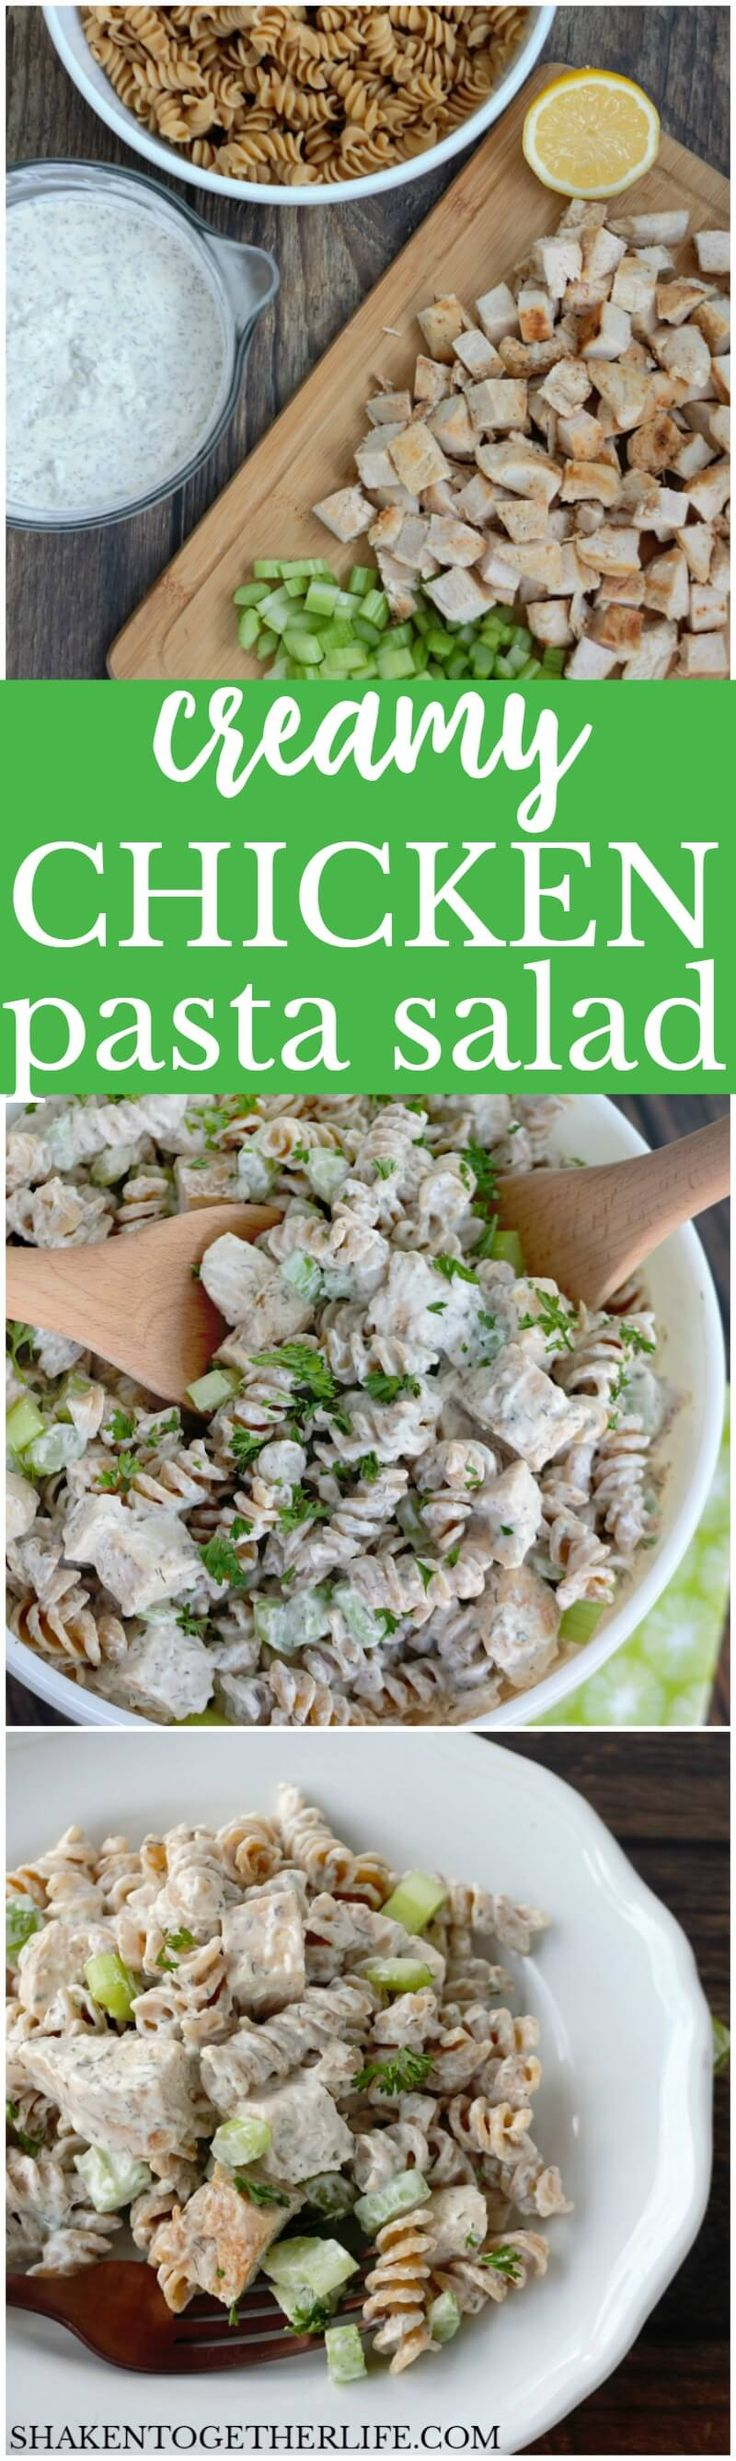 With tender grilled chicken, crunchy celery, whole grain pasta and a flavor packed dressing, this really is the BEST Creamy Chicken Pasta Salad I have ever made! This easy pasta salad recipe is great for lunch, brunch, picnics and potlucks!